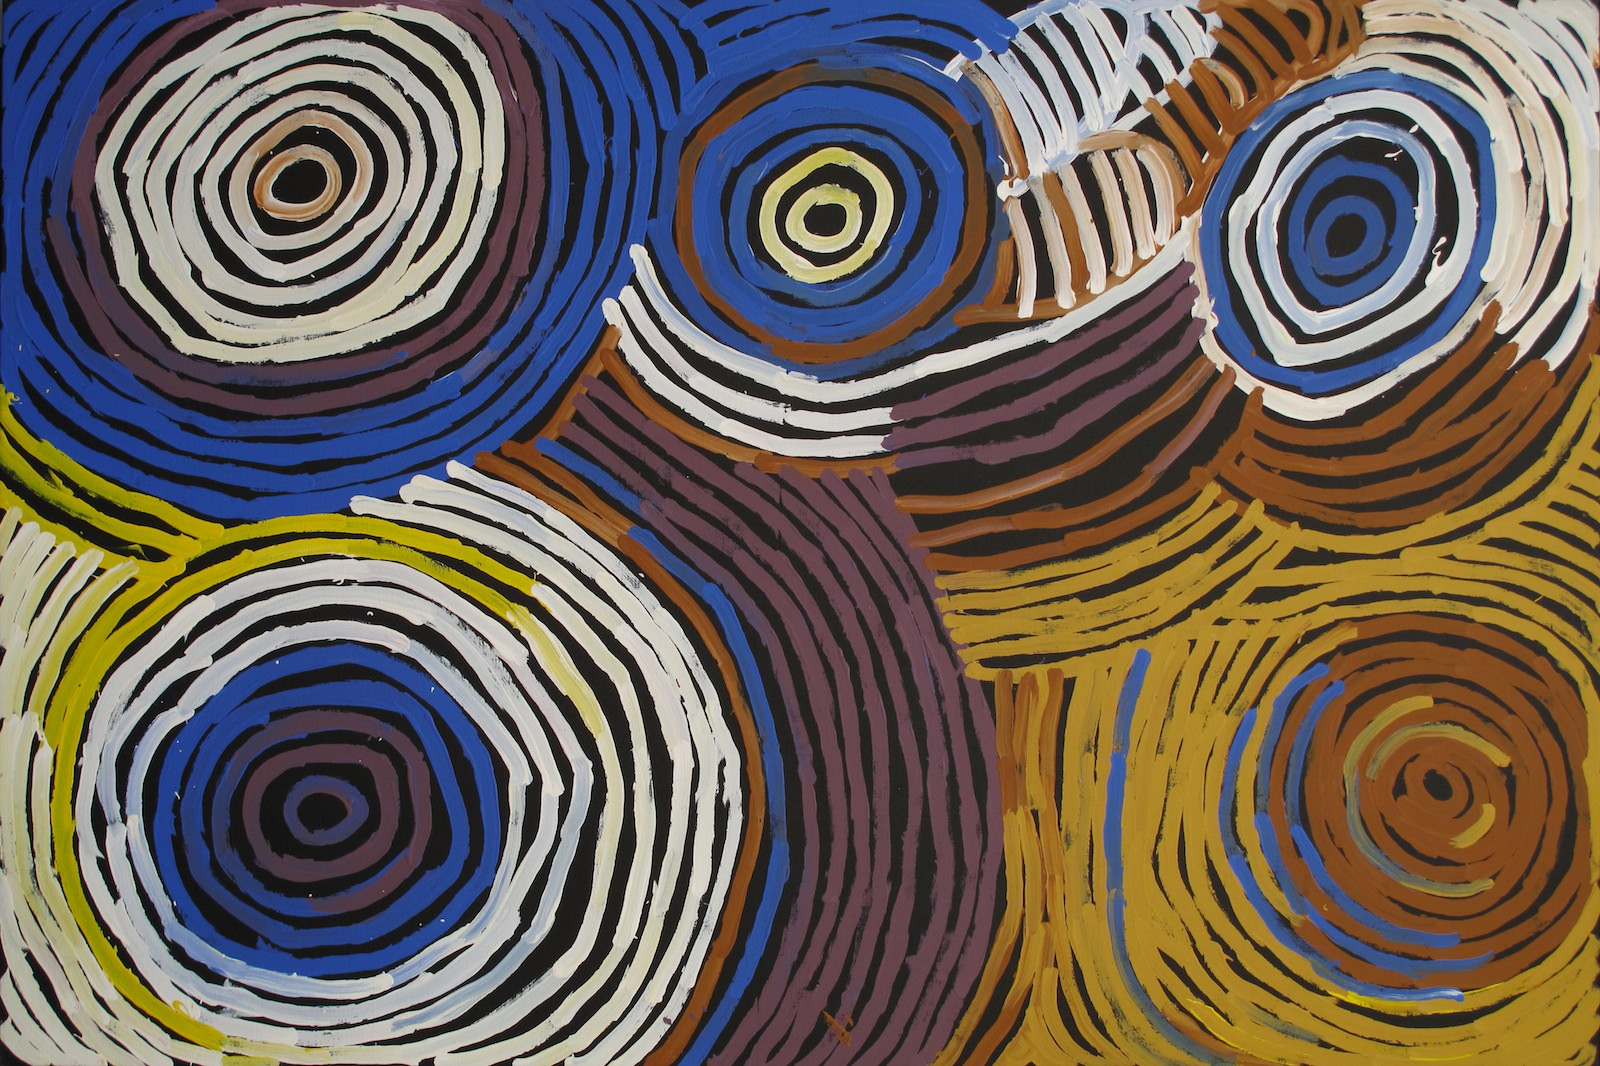 Minnie Pwerle 'Body Paint' 121cm x 180cm #10205- A large work in strong blue tones